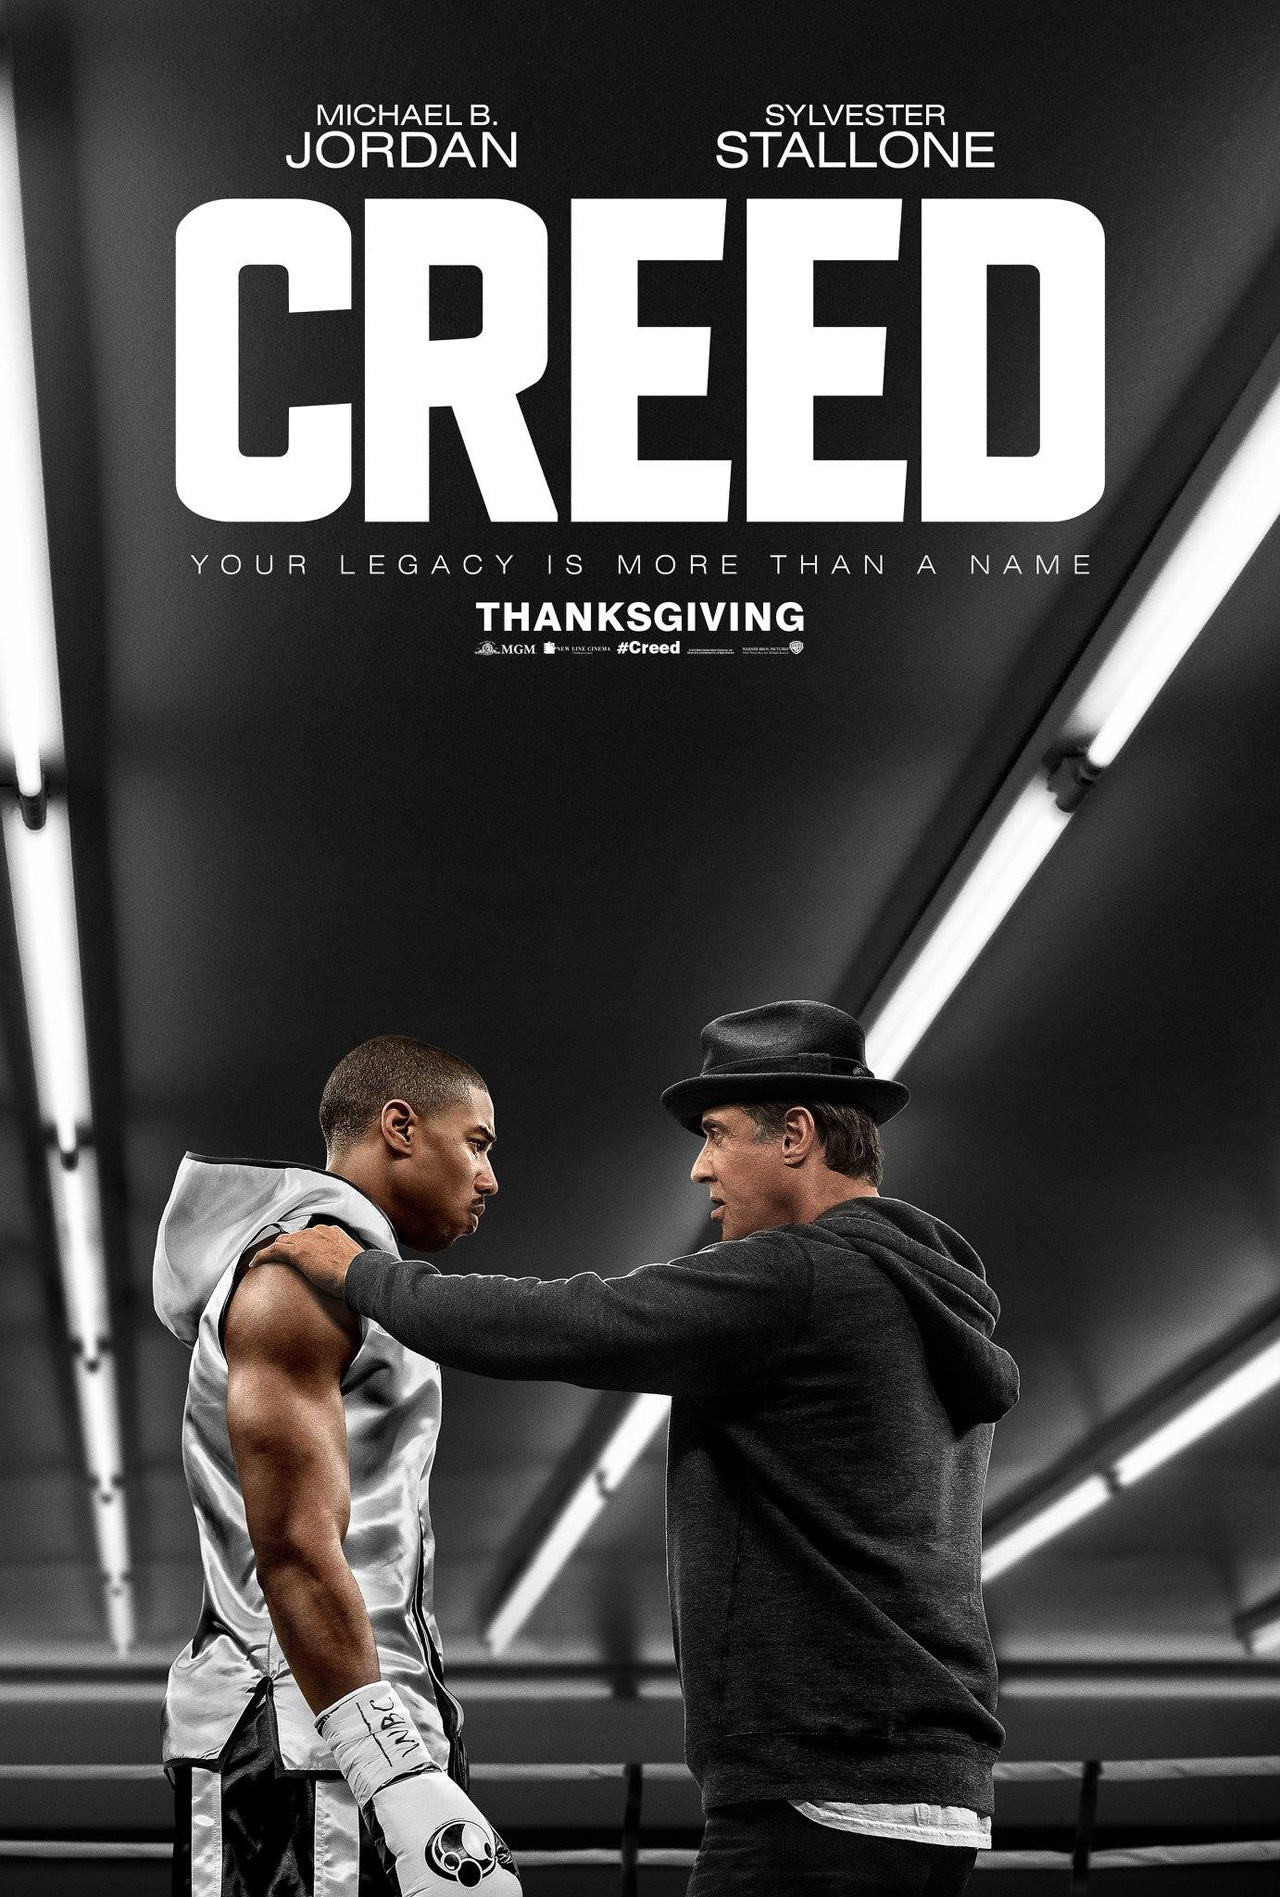 Road to Cinema Goes Inside 'Creed' with Co-Screenwriter Aaron Covington & Co-Editor Claudia Castello